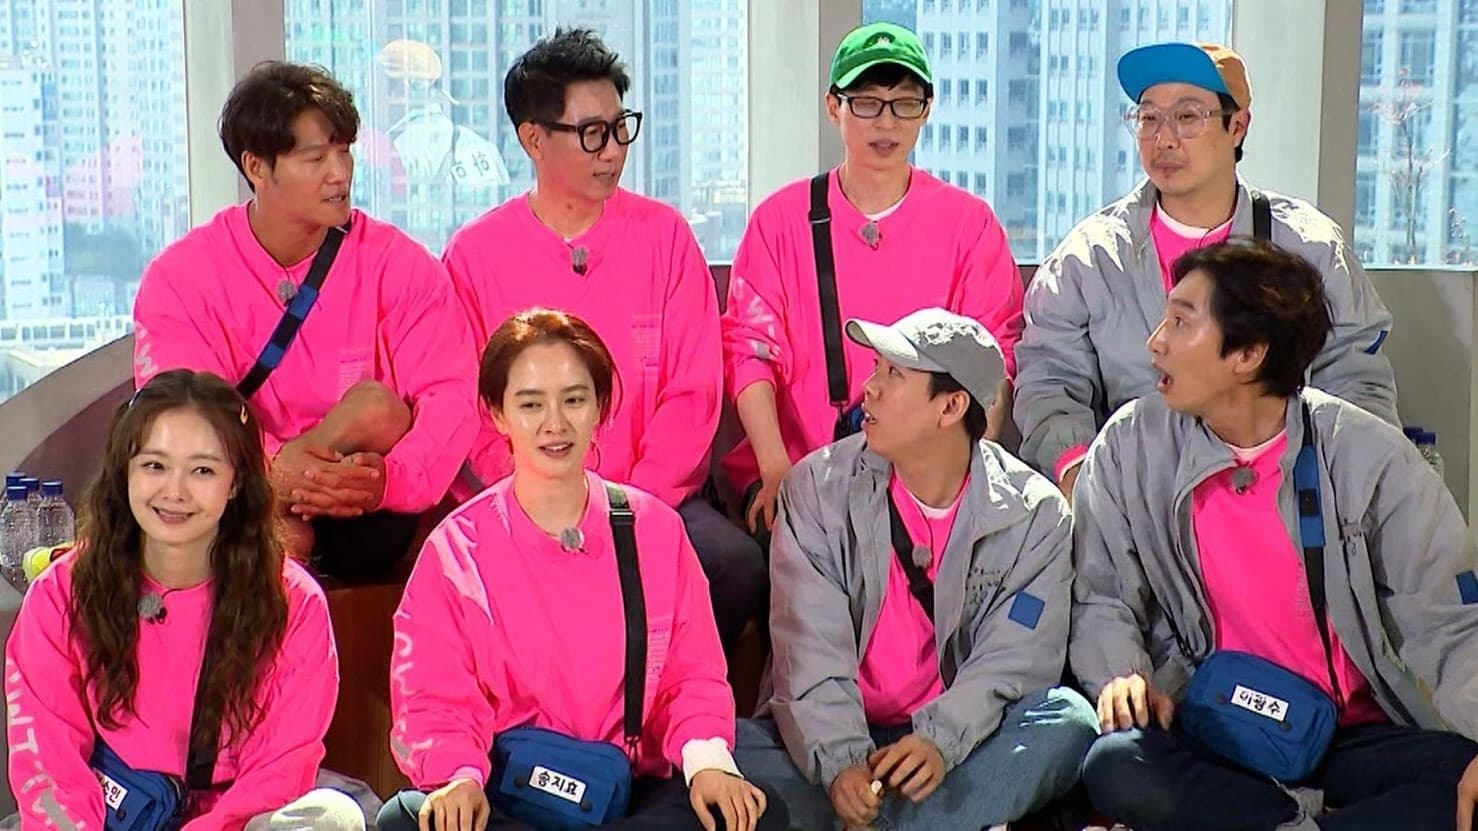 Running Man Season 1 :Episode 554  Credit Card Payment Race, When You Go to the TV Station